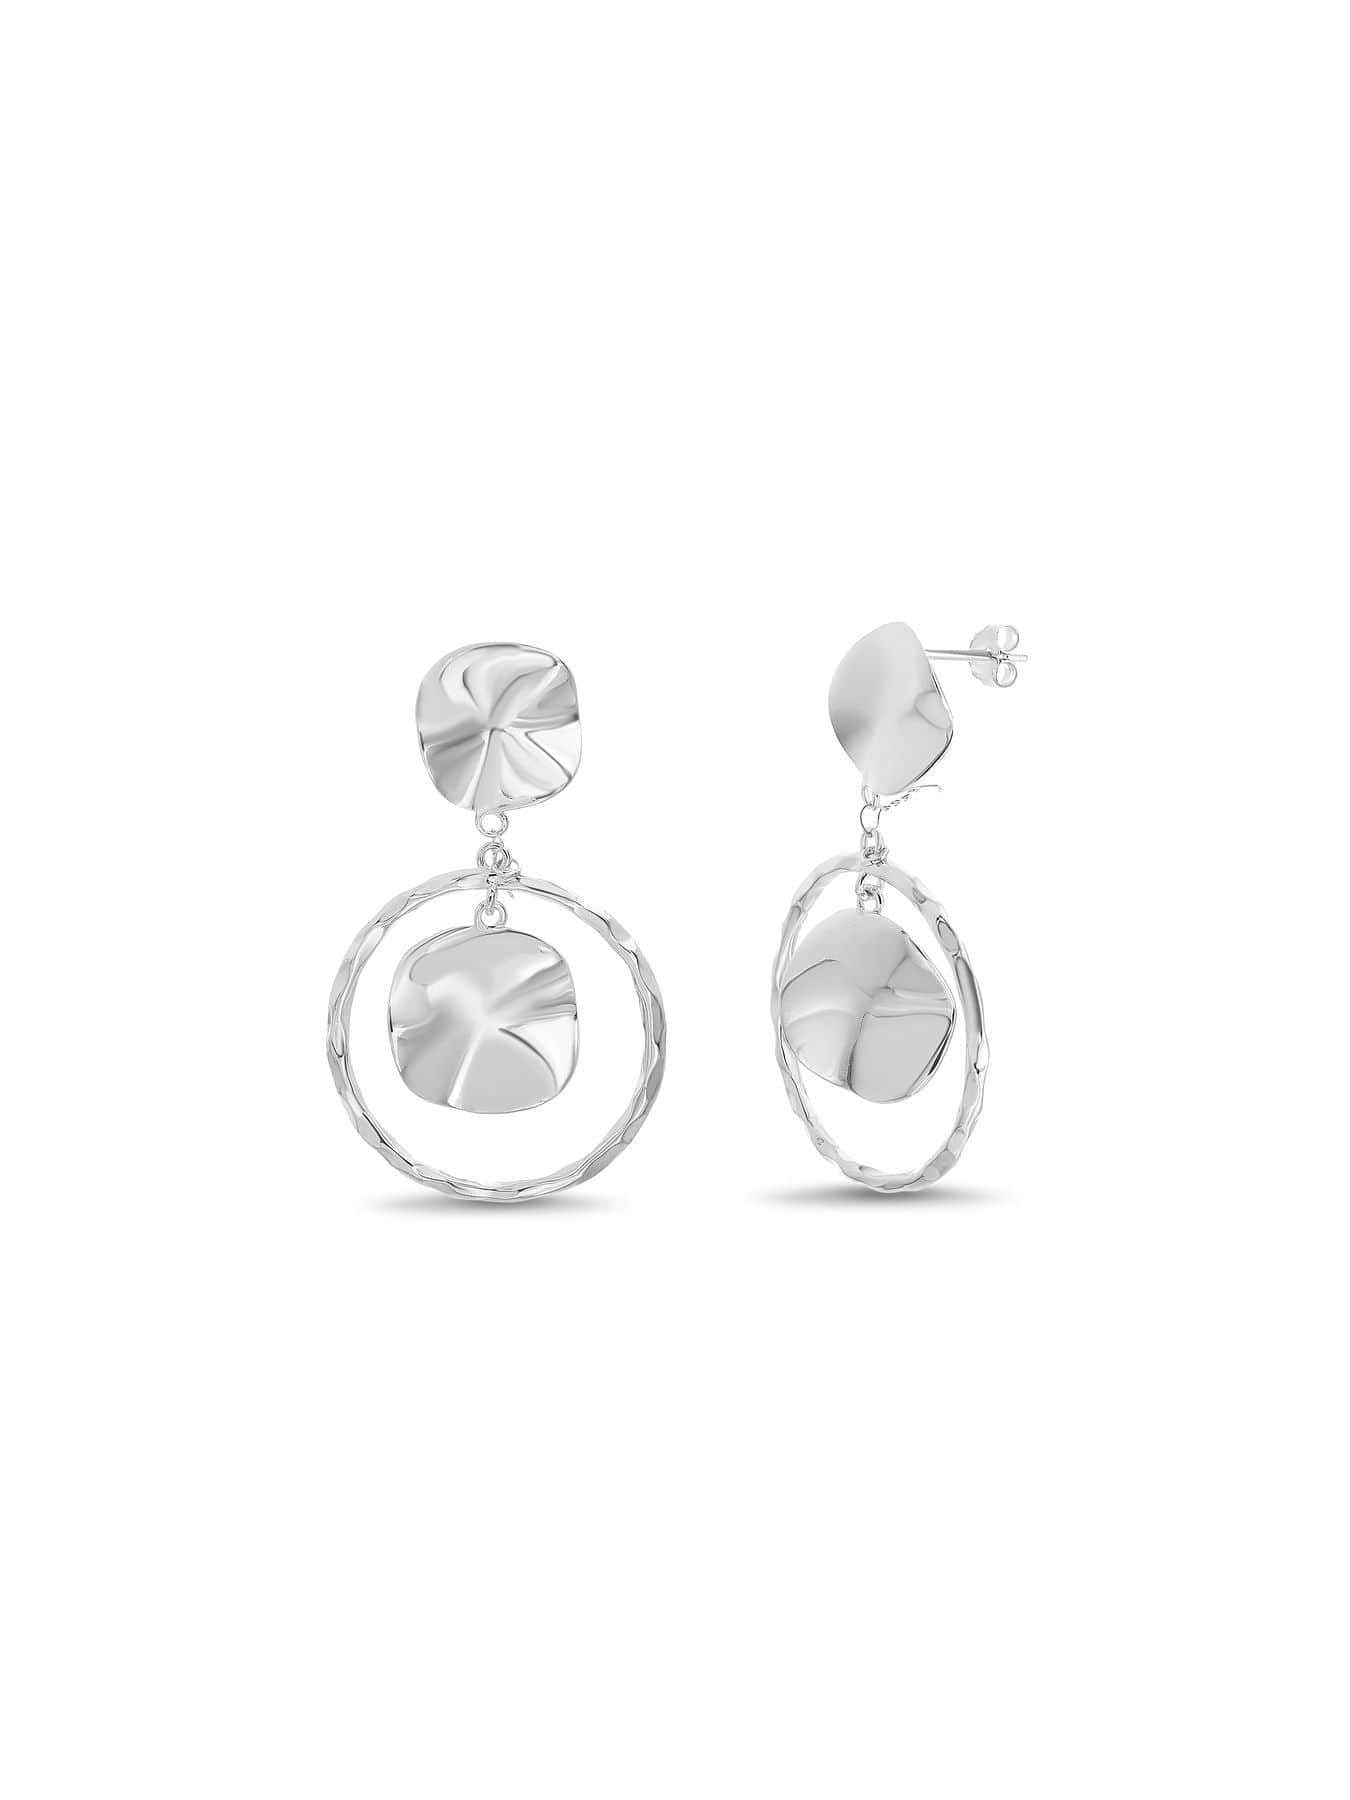 Inspired By You Sterling Silver Circle Drop Earrings